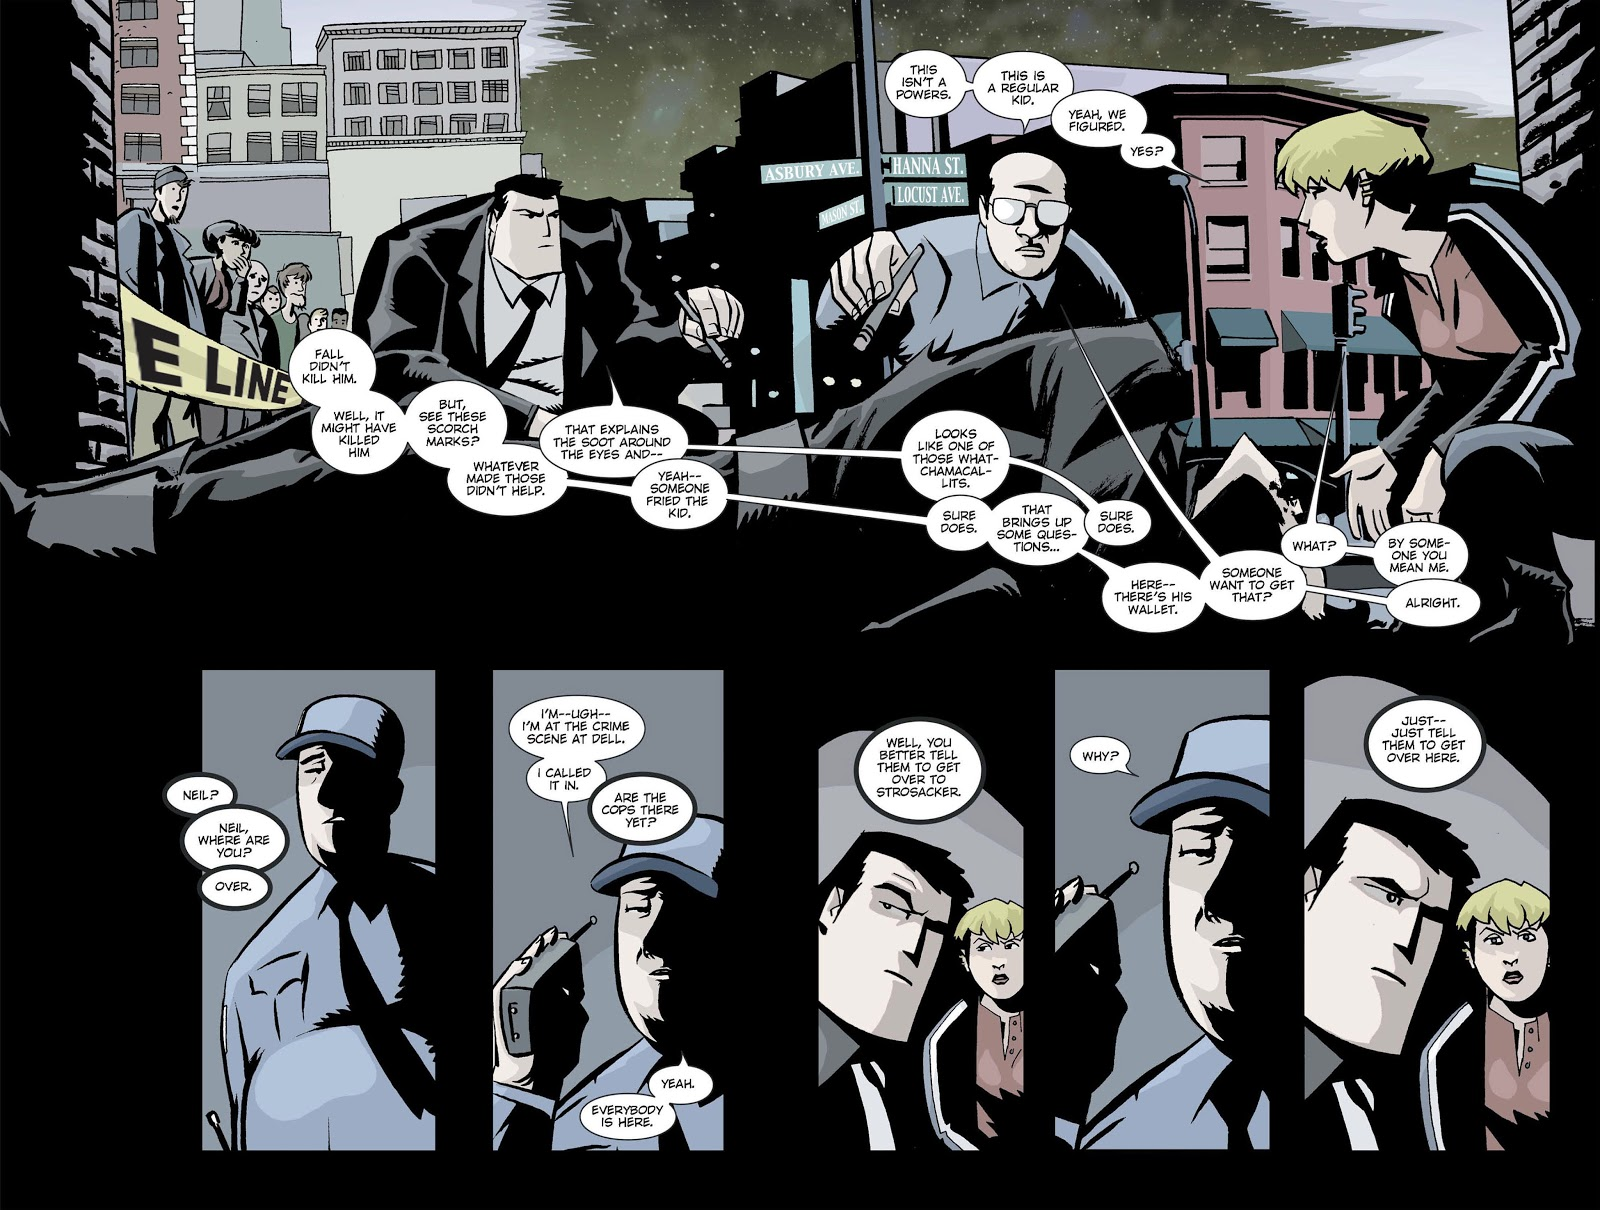 Powers Definitive Hardcover Vol 1 review